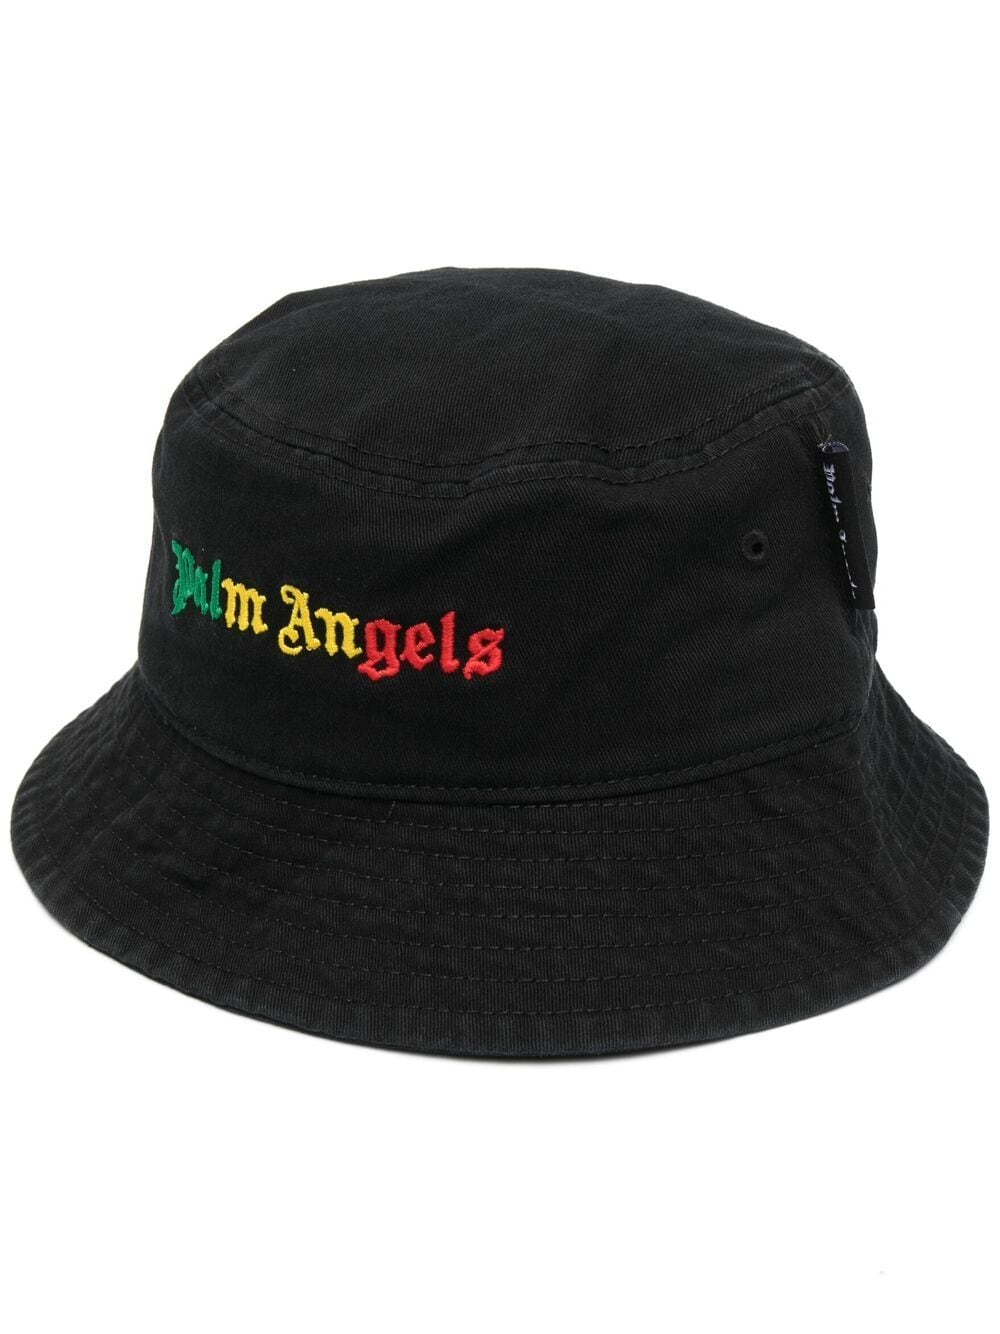 PALM ANGELS MEN MIAMI LOGO BUCKET HAT